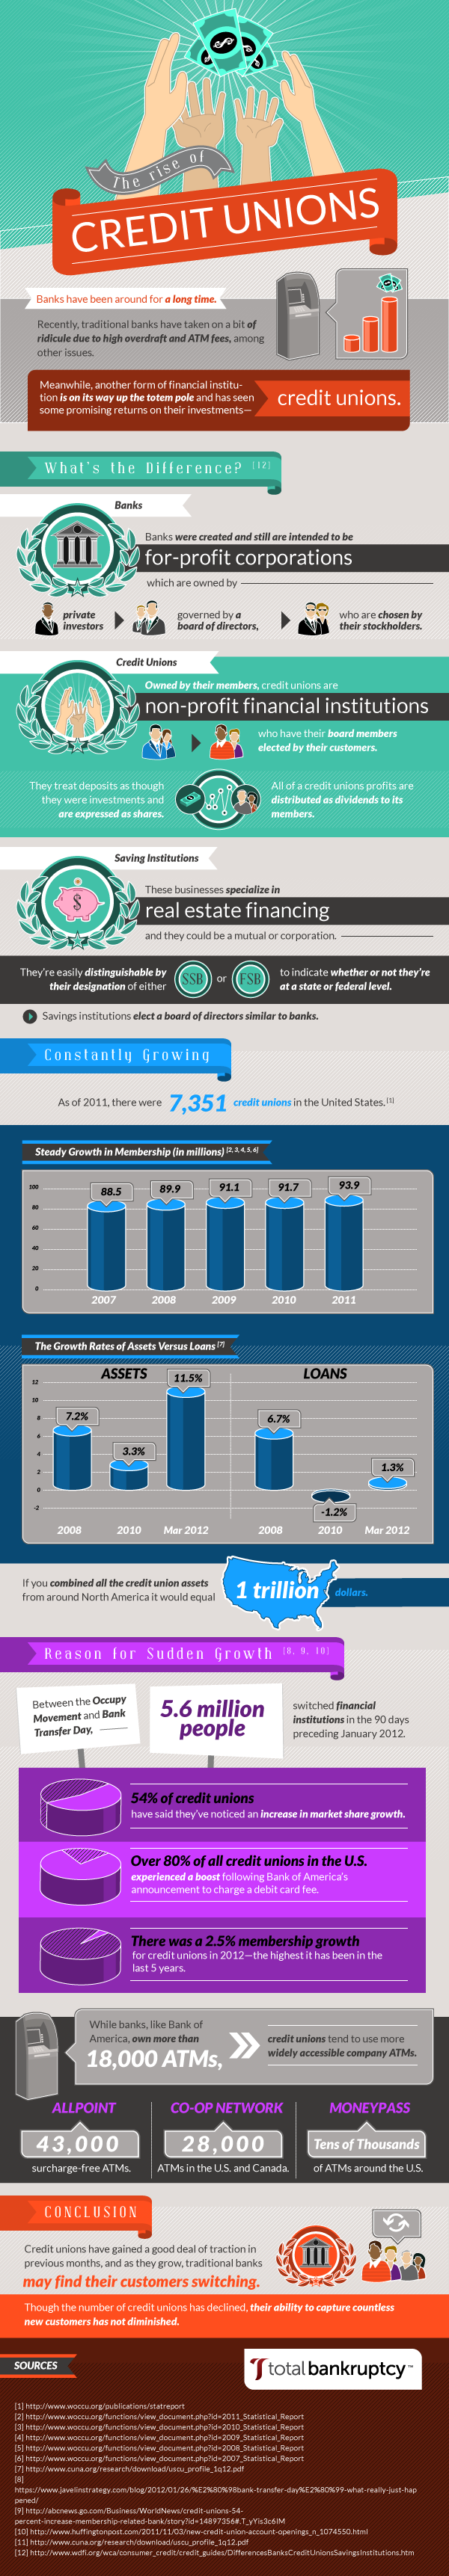 the-rise-of-credit-unions_5097ee0fc50f4